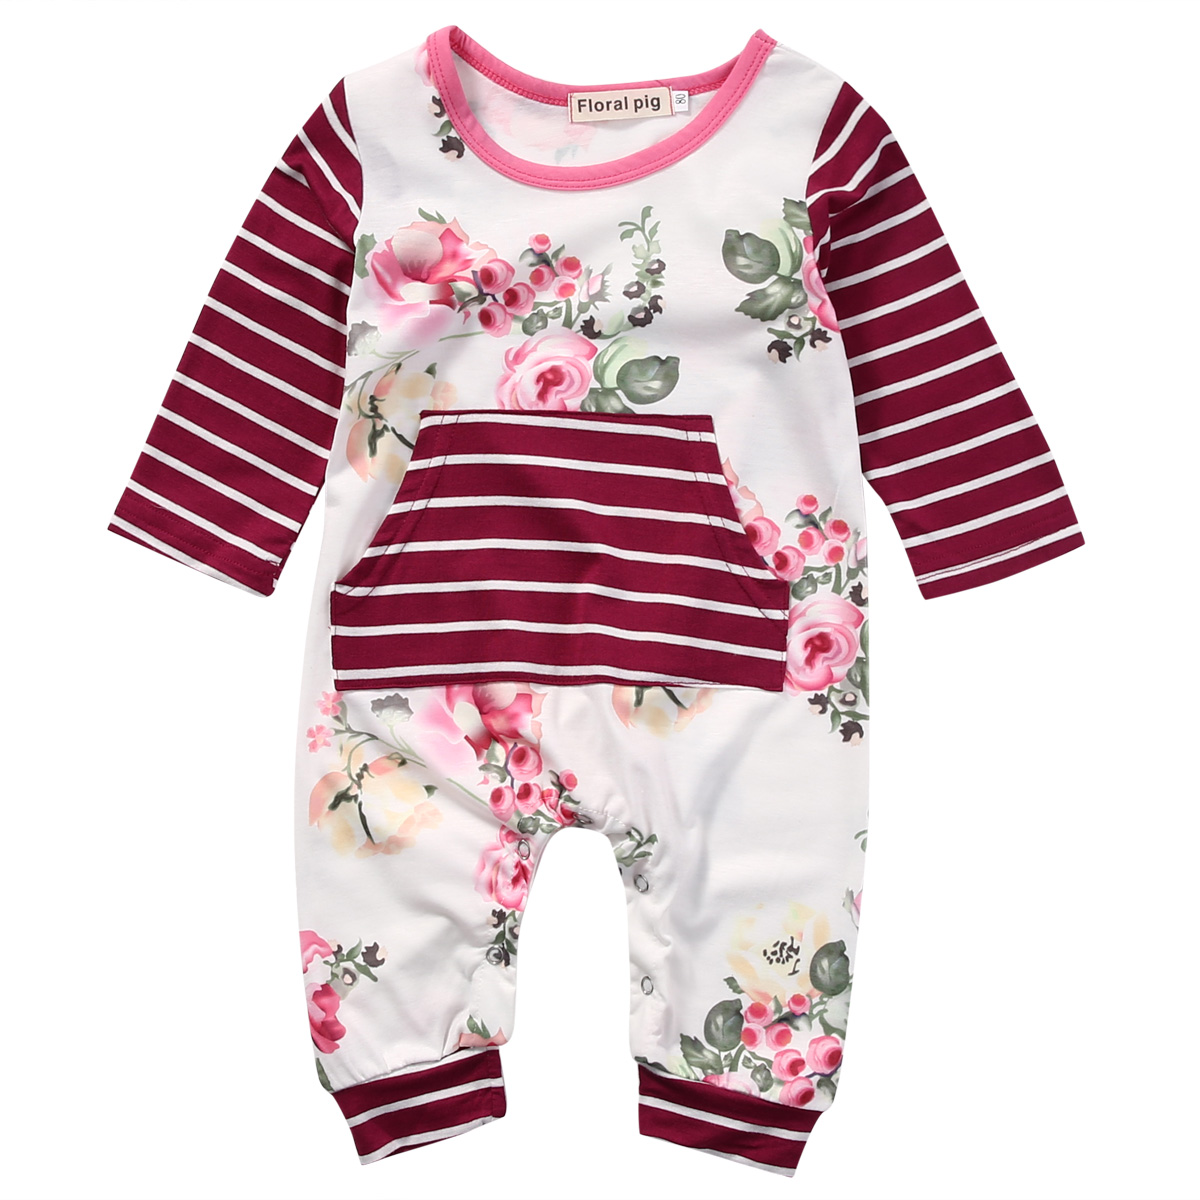 2017 New Floral Romper Infant Bebes Boy Girl Clothes Long Sleeve Newborn Jumpsuit One Pieces Outfit Tracksuit 0-18M newborn infant baby girl clothes strap lace floral romper jumpsuit outfit summer cotton backless one pieces outfit baby onesie